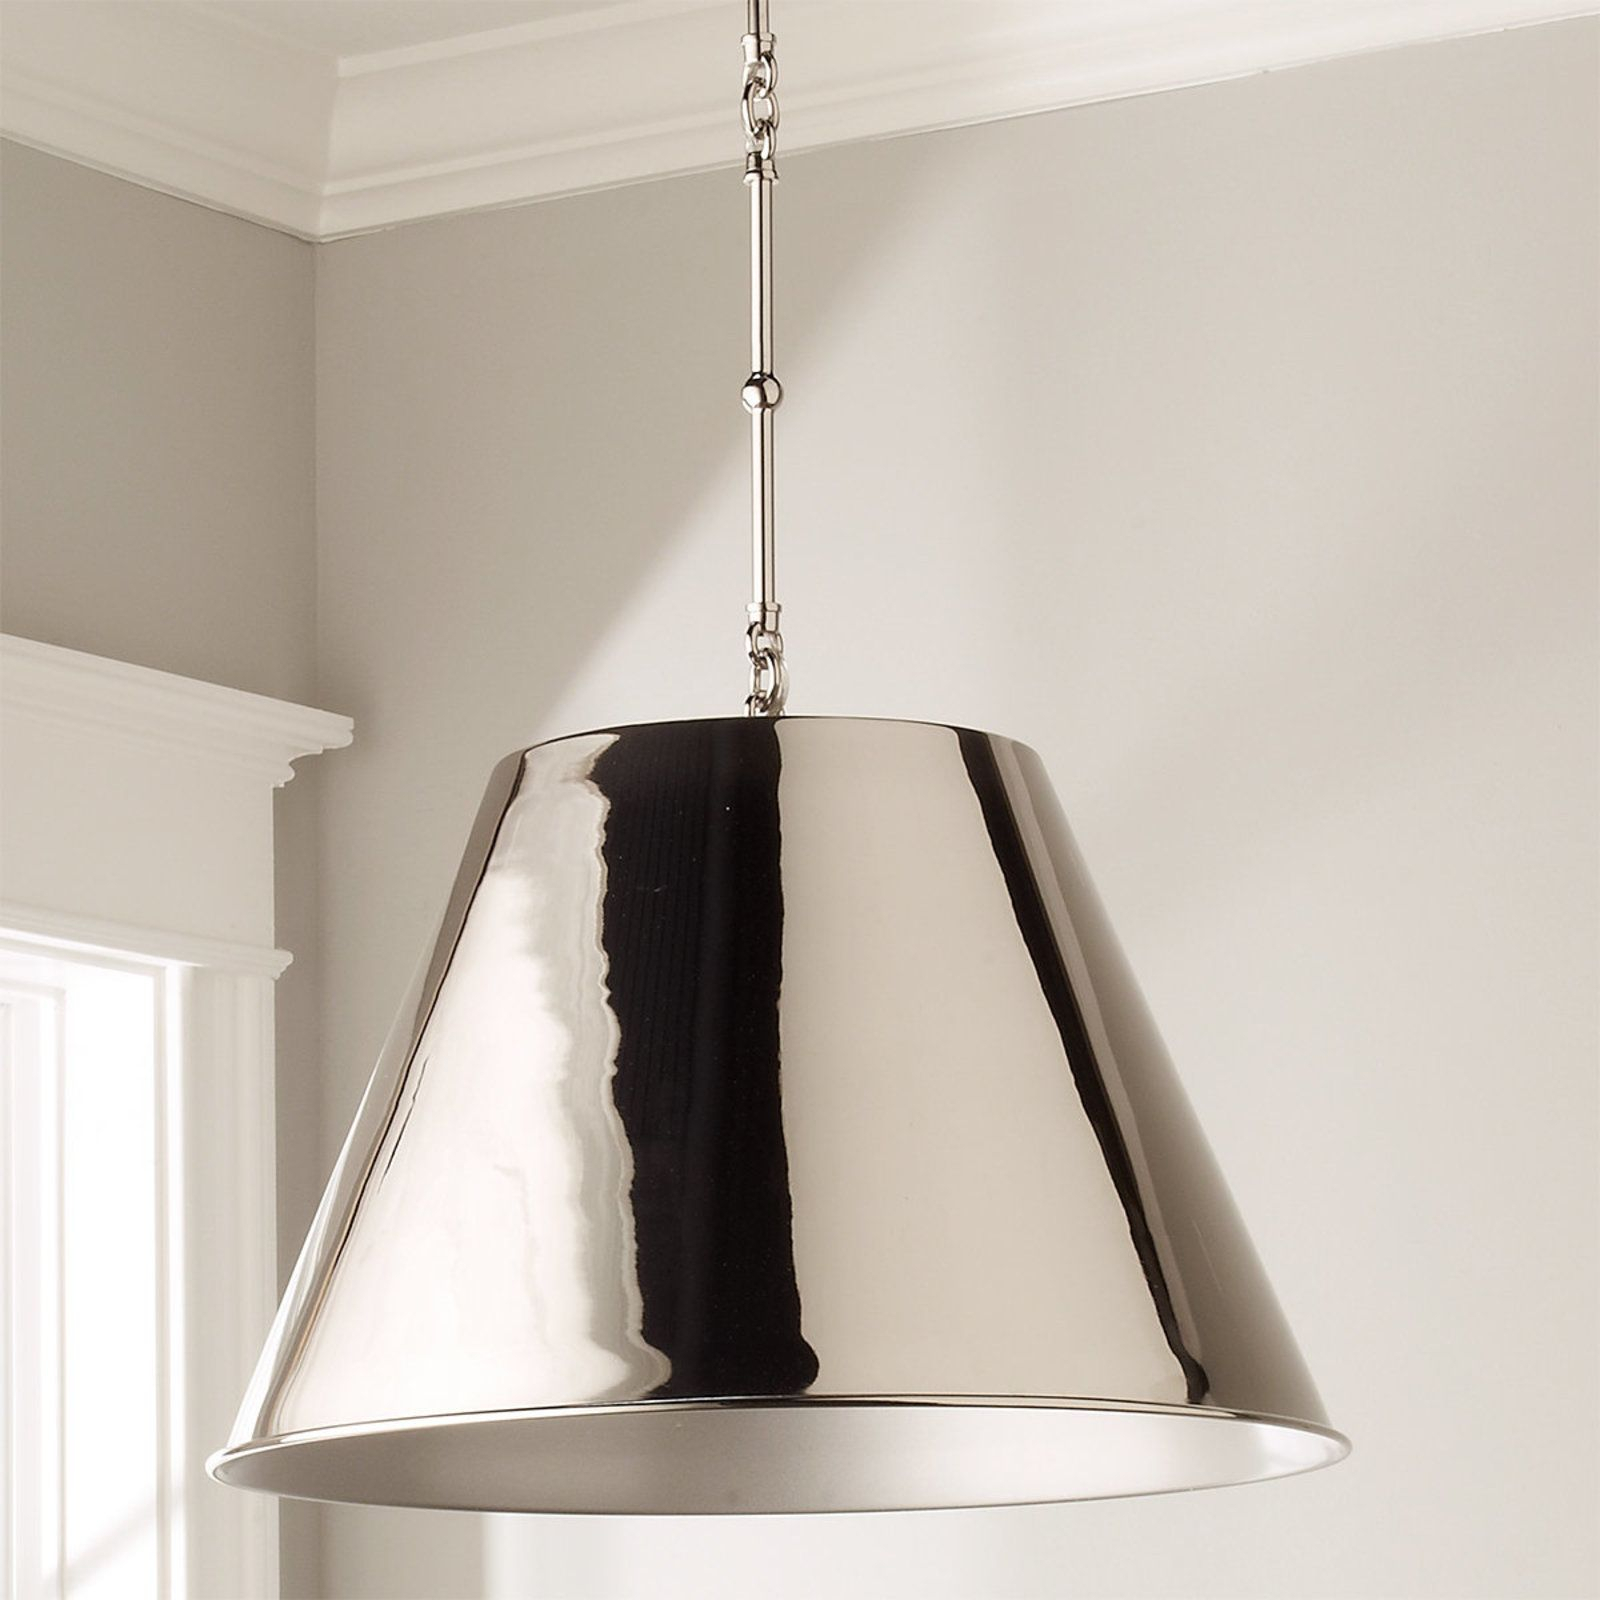 Modern Metal Shade Pendant | Shelly N. | Shades, Metal, Pendants intended for Bainbridge 1-Light Single Cylinder Pendants (Image 21 of 30)